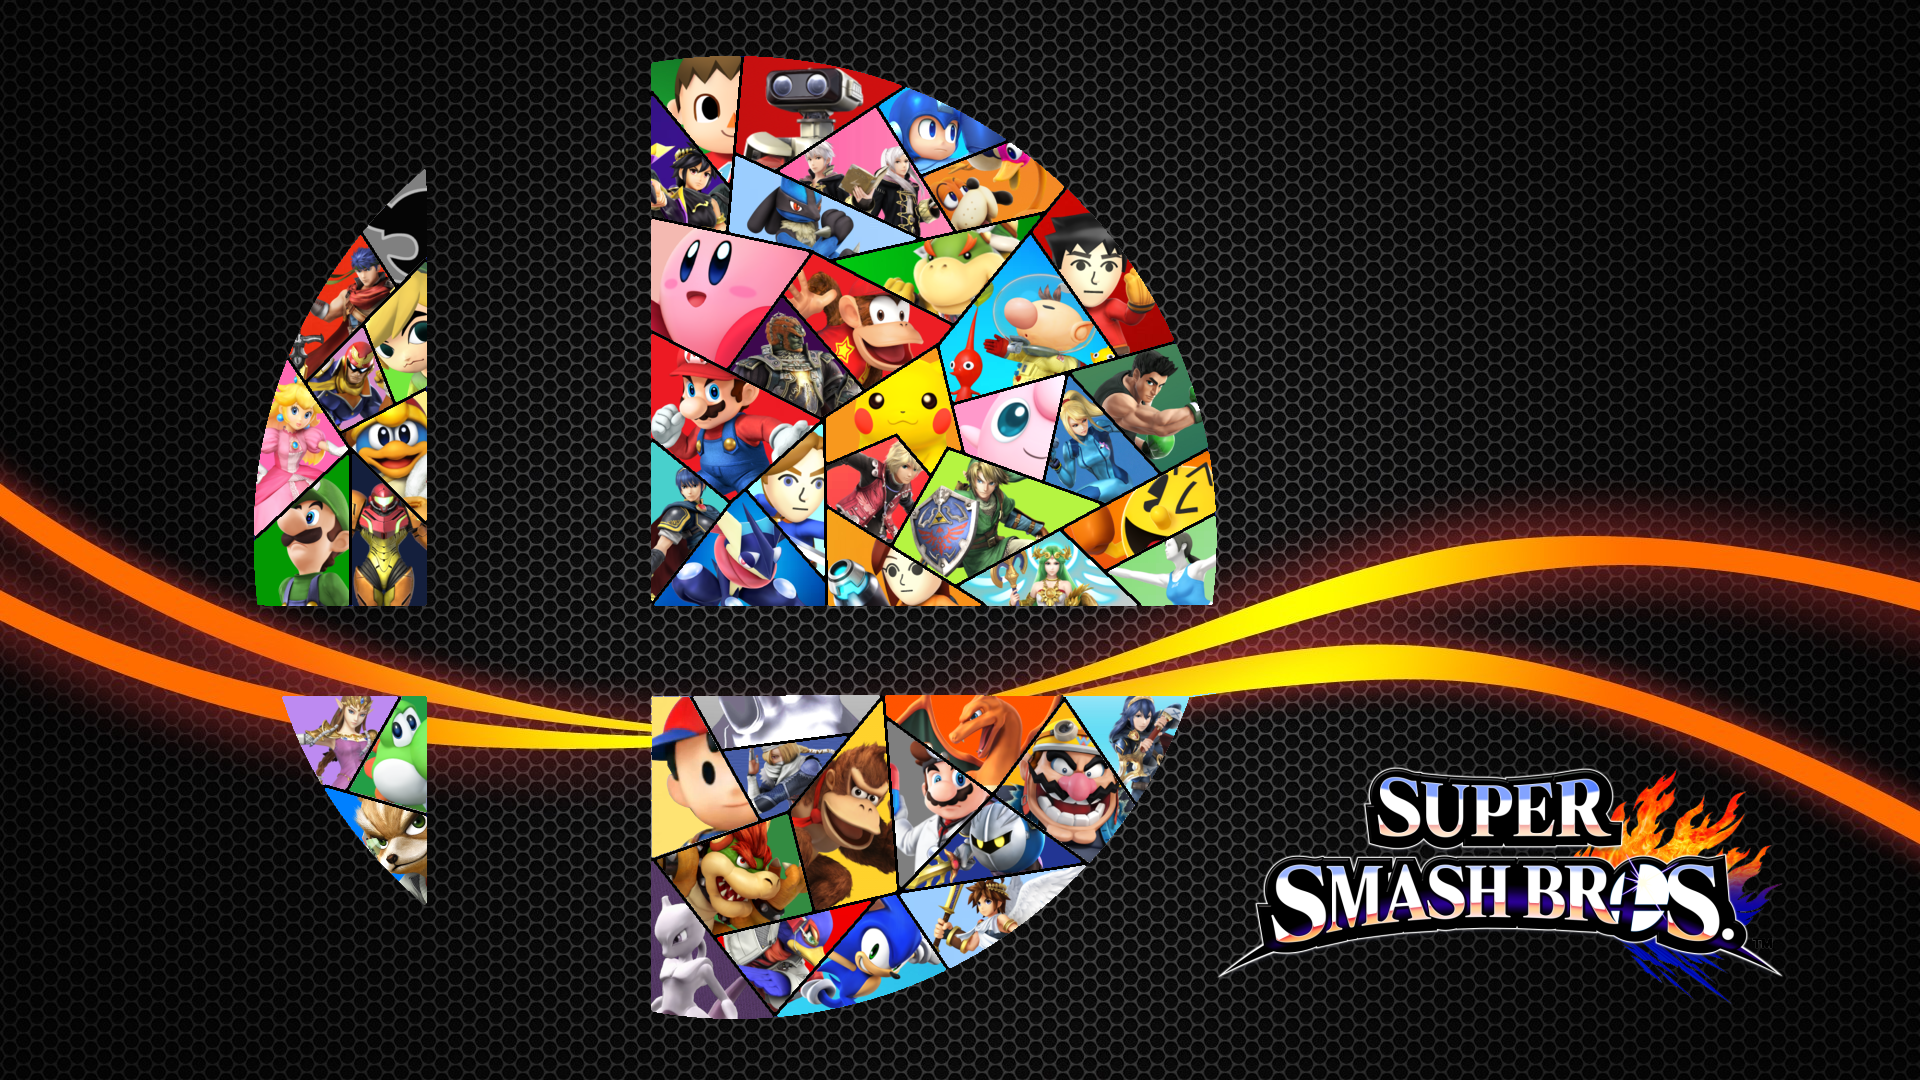 Free Download Super Smash Bros Hd Wallpapers And Background Images